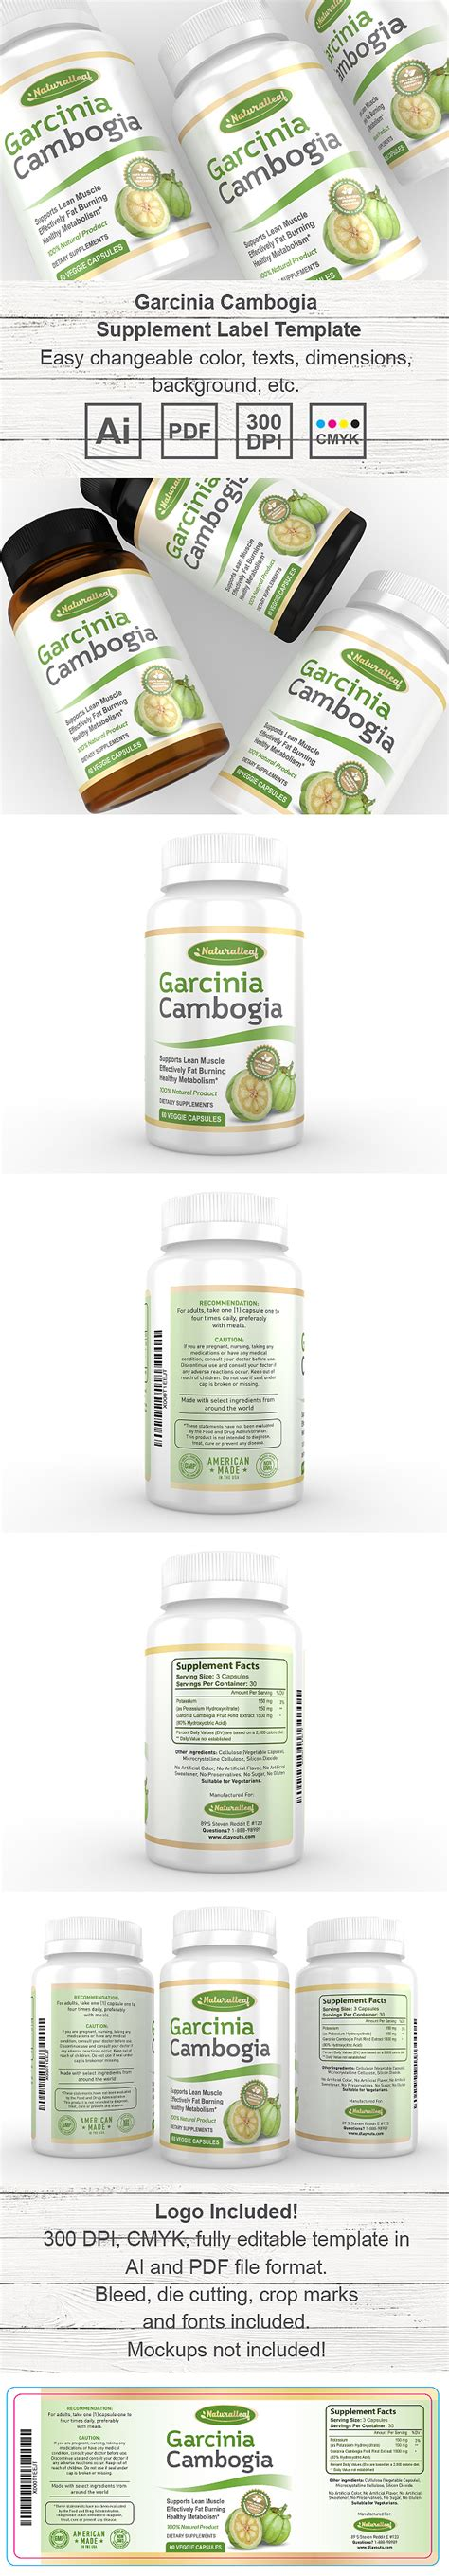 supplement label template garcinia cambogia supplement label template dlayouts